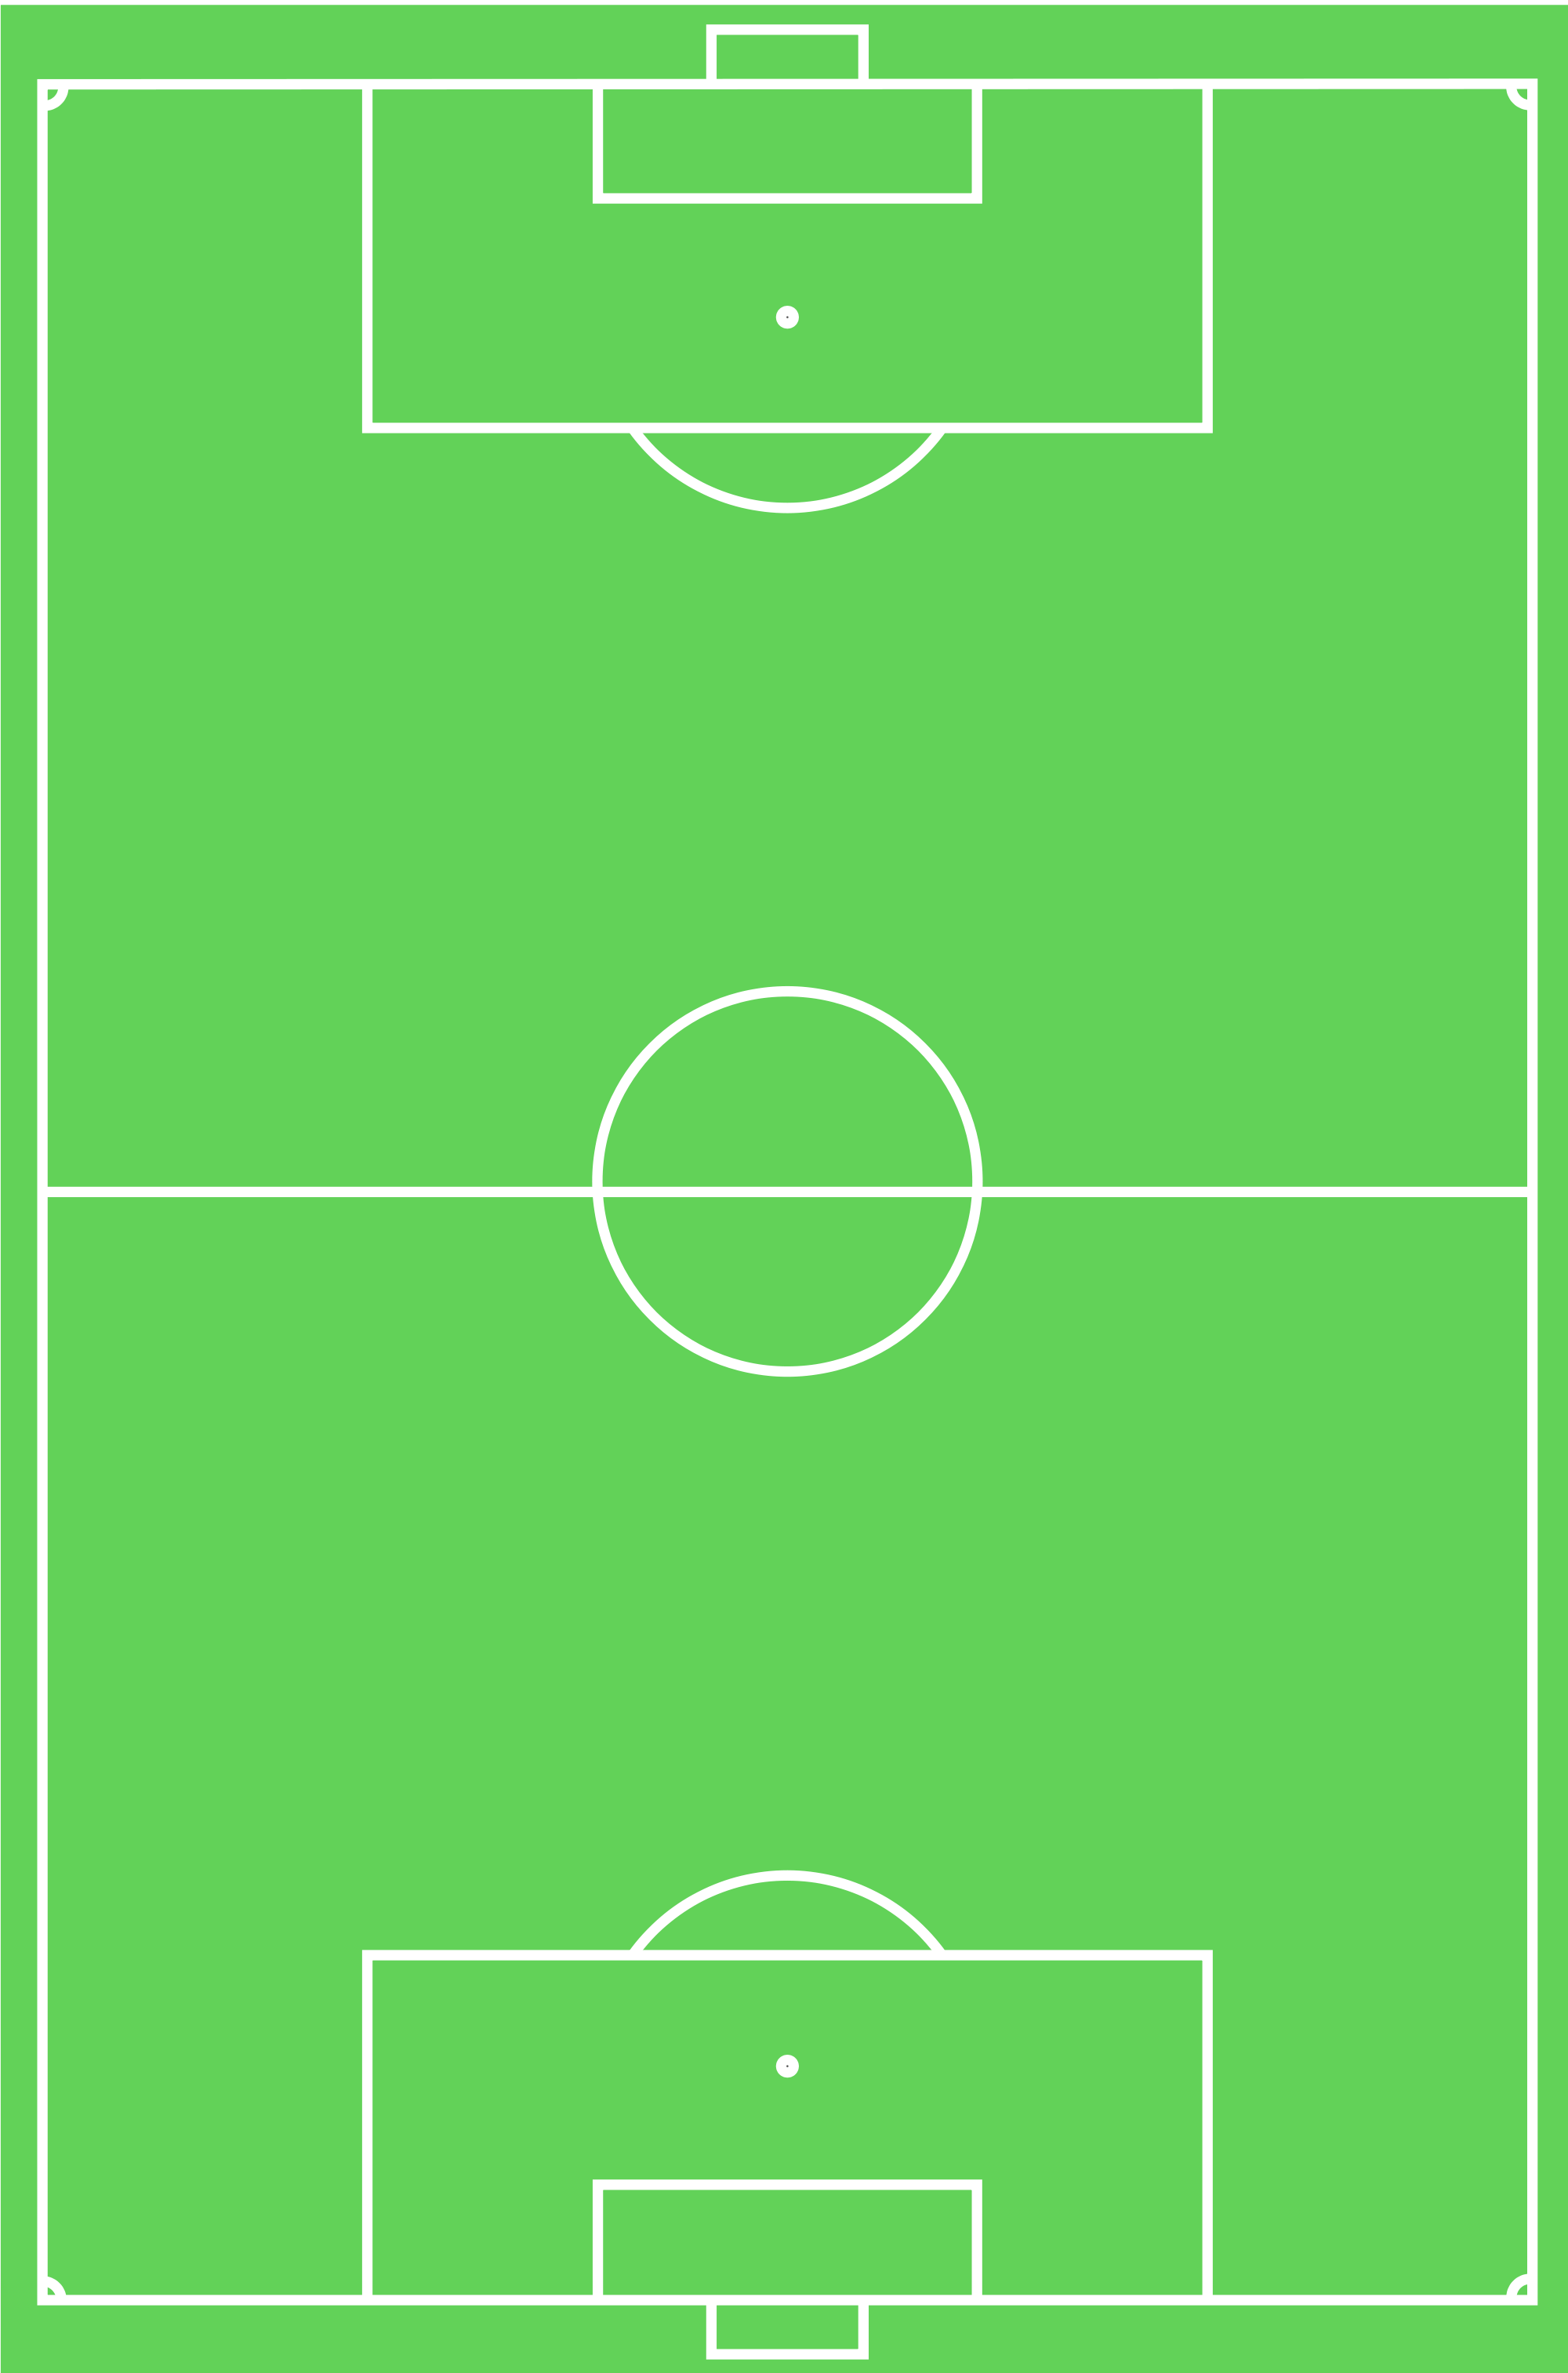 soccer positions diagram push mower wiring free field template, download clip art, art on clipart library